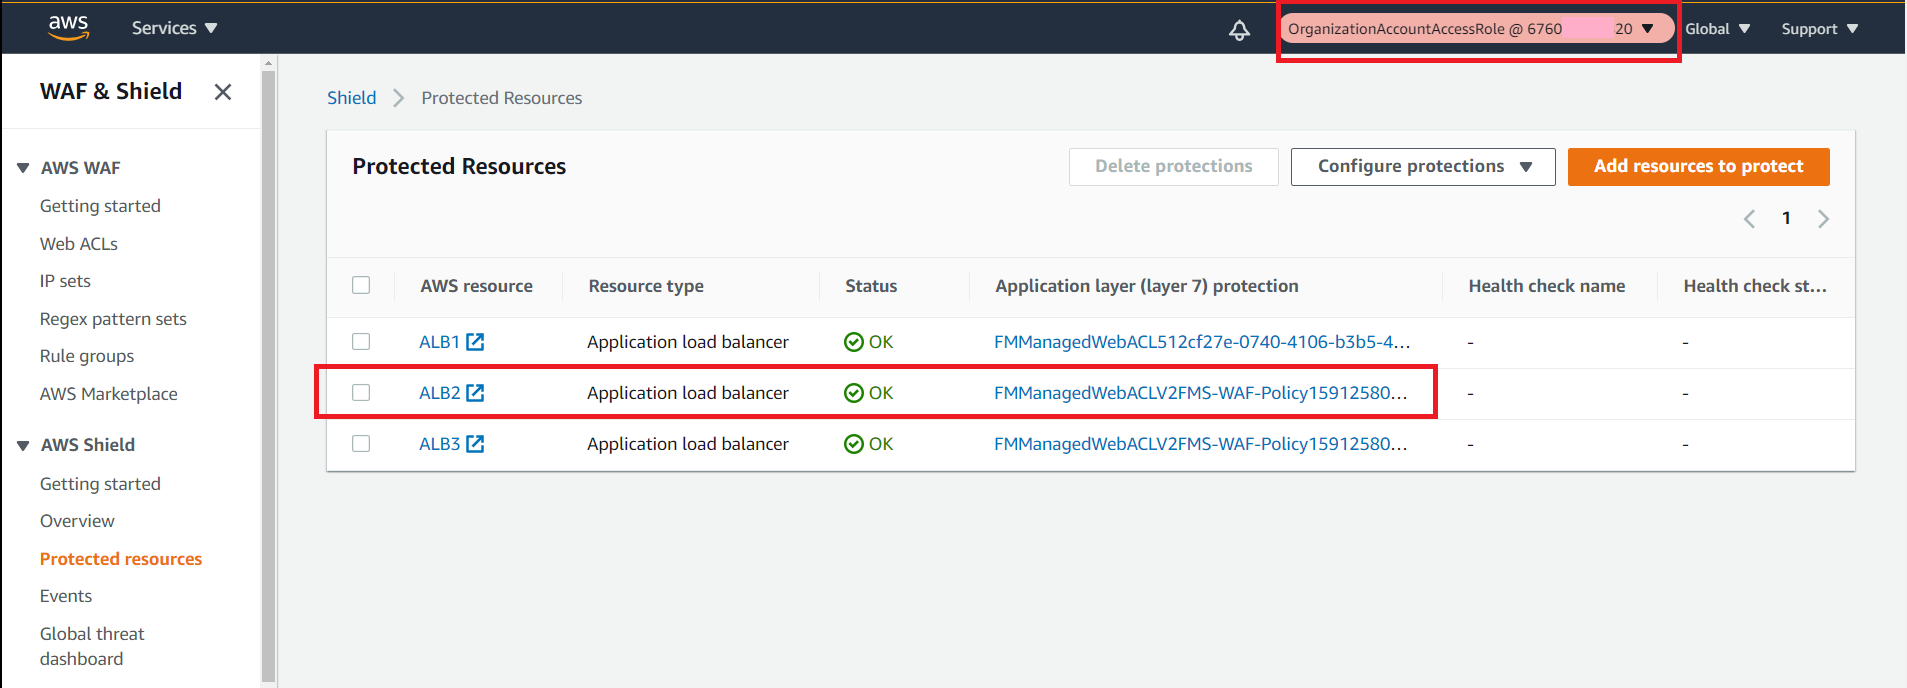 Figure 15: Shield console in the member account shows that the new ALB is a protected resource